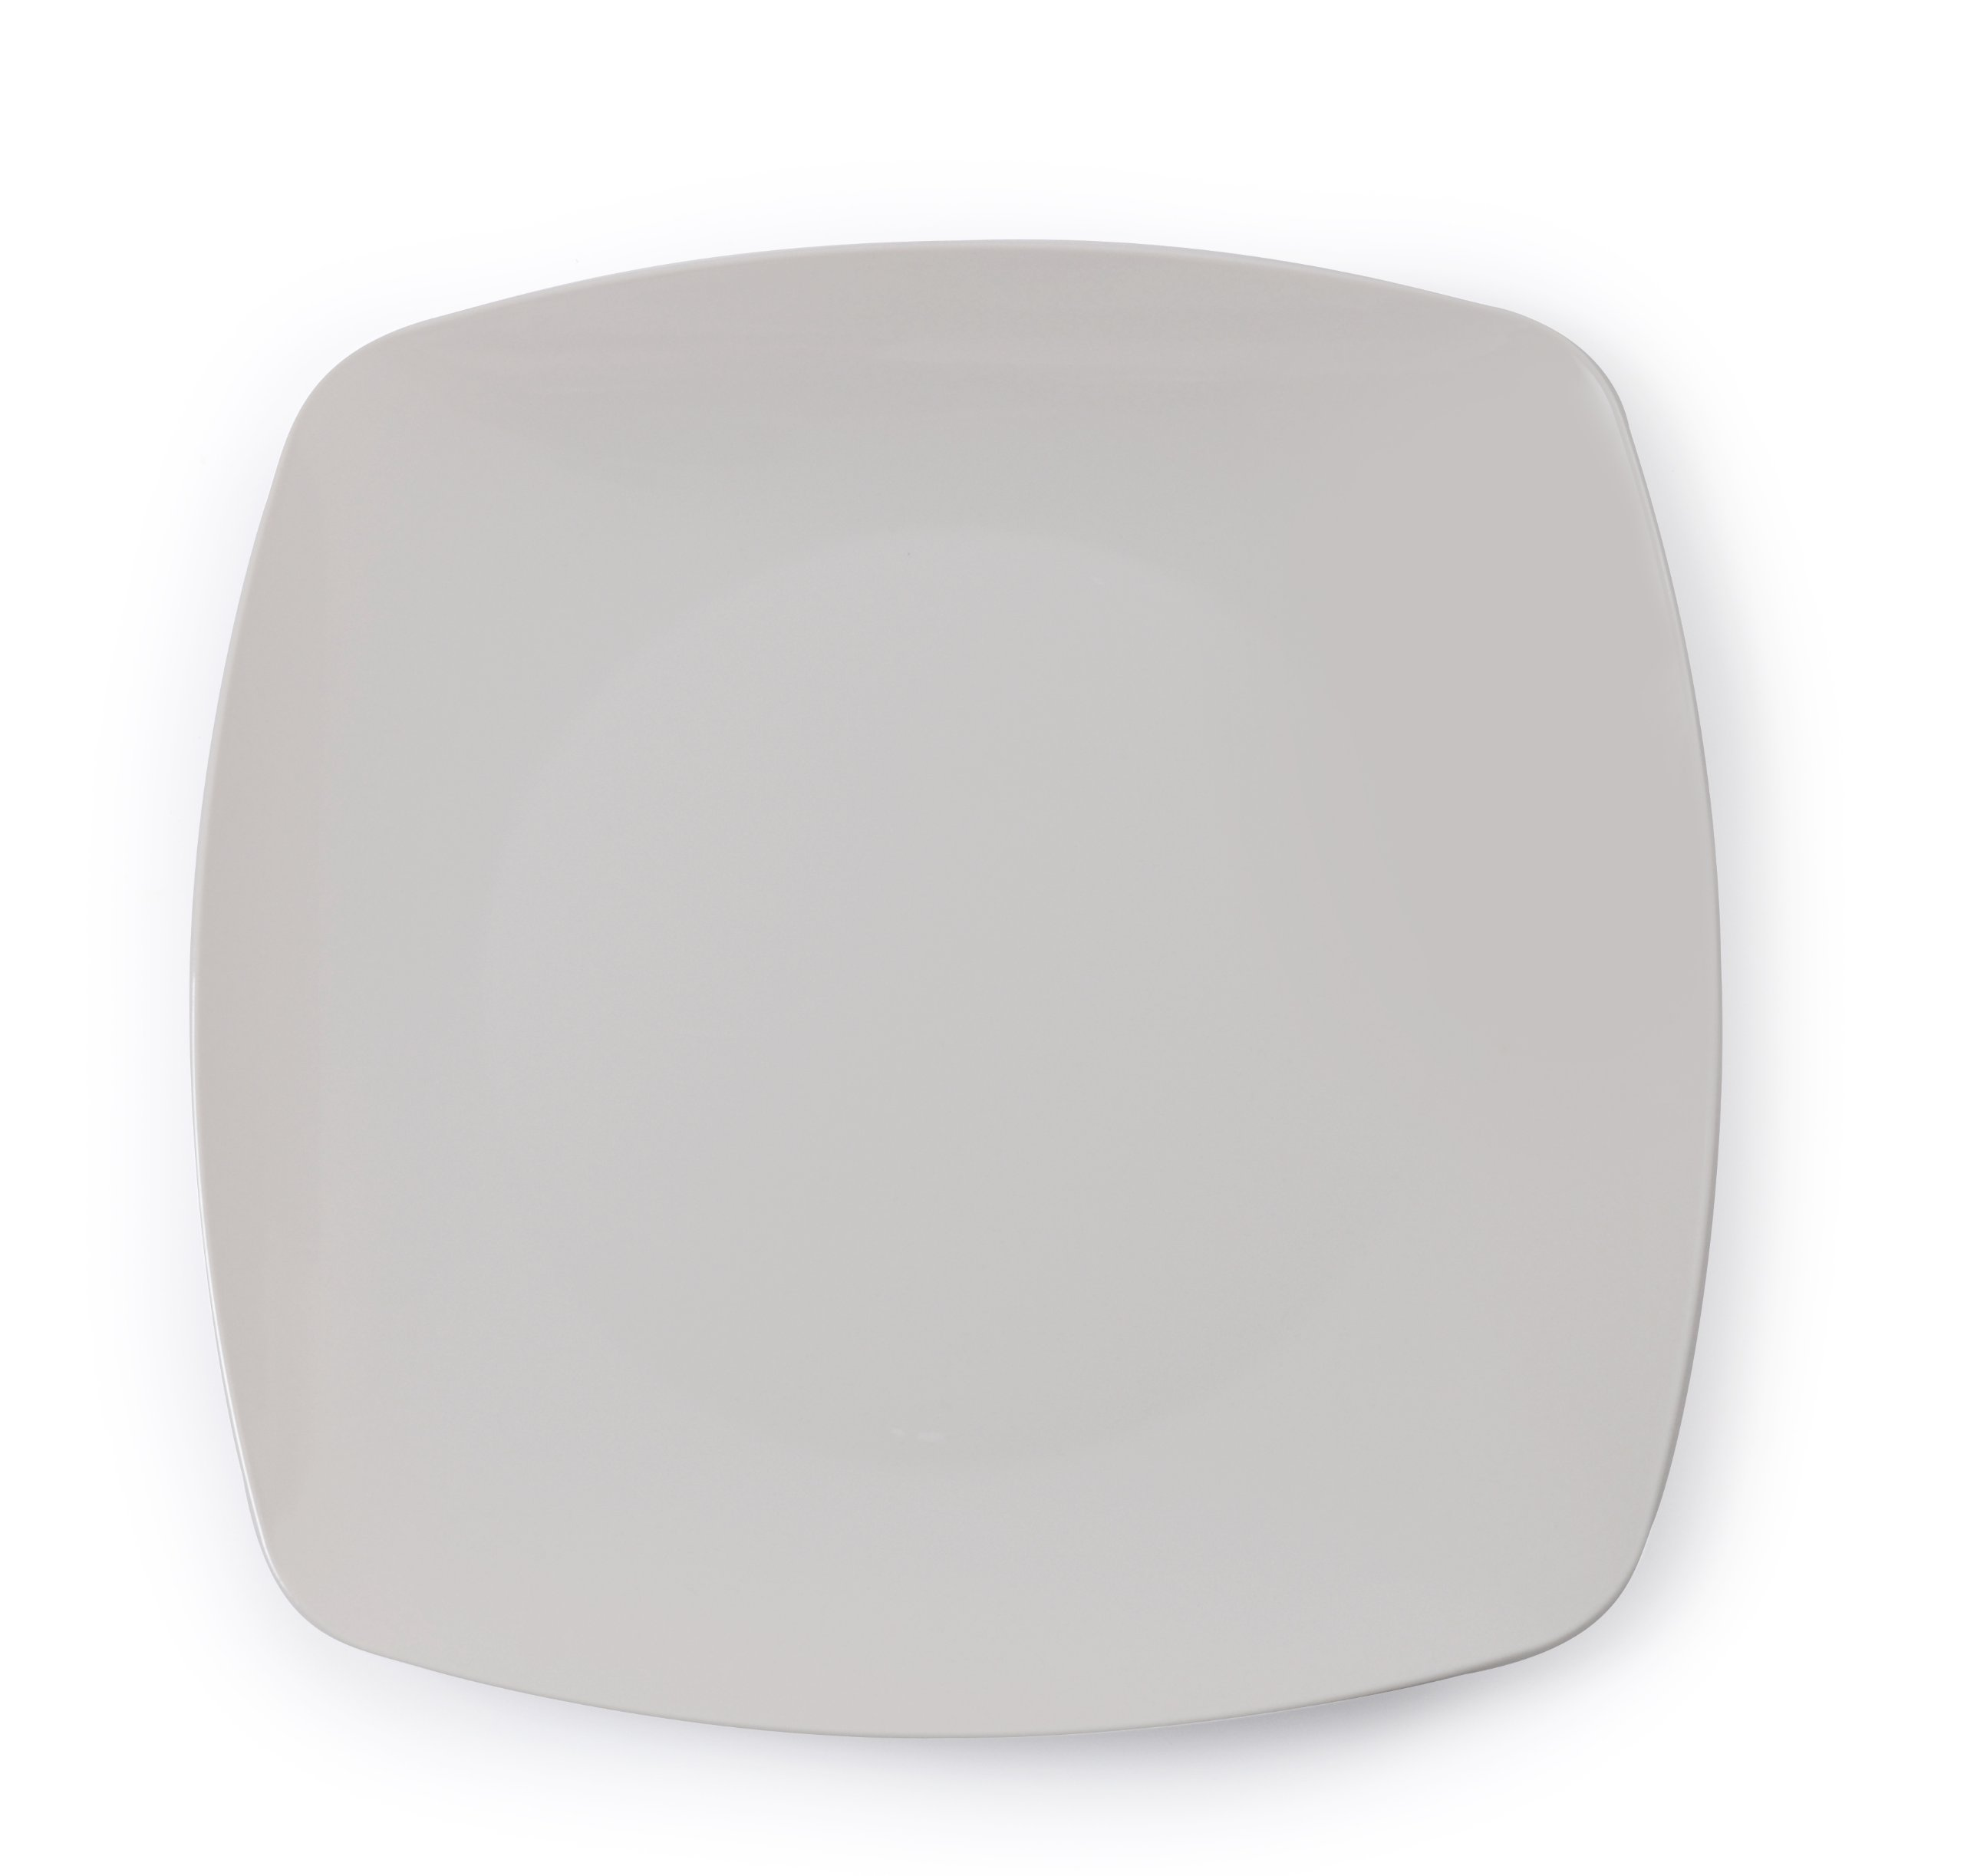 Fineline Settings Renaissance 5.5-Inch Bone Rounded Square China Plate, 120-Piece by Renaissance